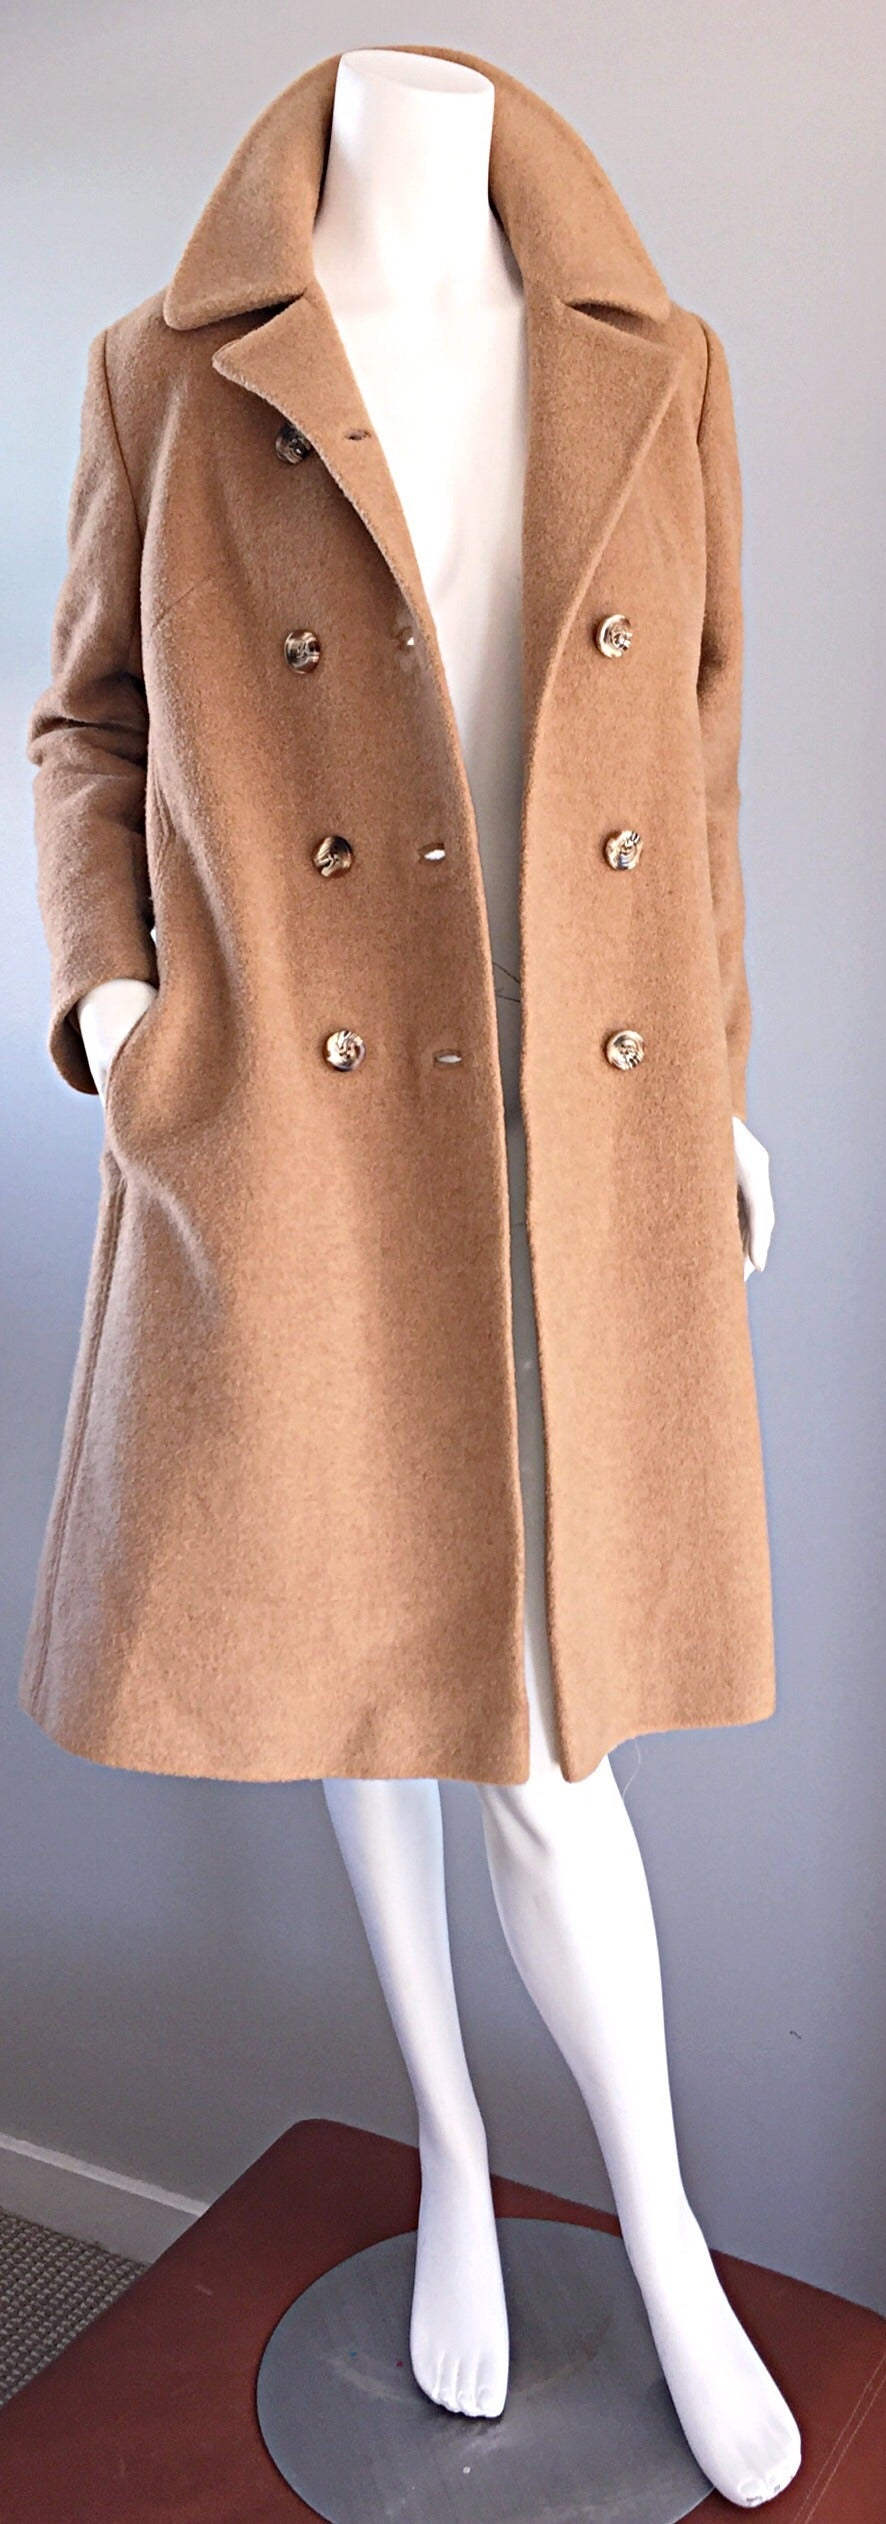 Classic 1960s camel hair jacket! Jackie-O style, with wonderful double breasted horn buttons. Timeless jacket, with so much style! Great tailored fit. Can be worn open or closed. Pockets at both sides of waist. Fully lined. In great condition.